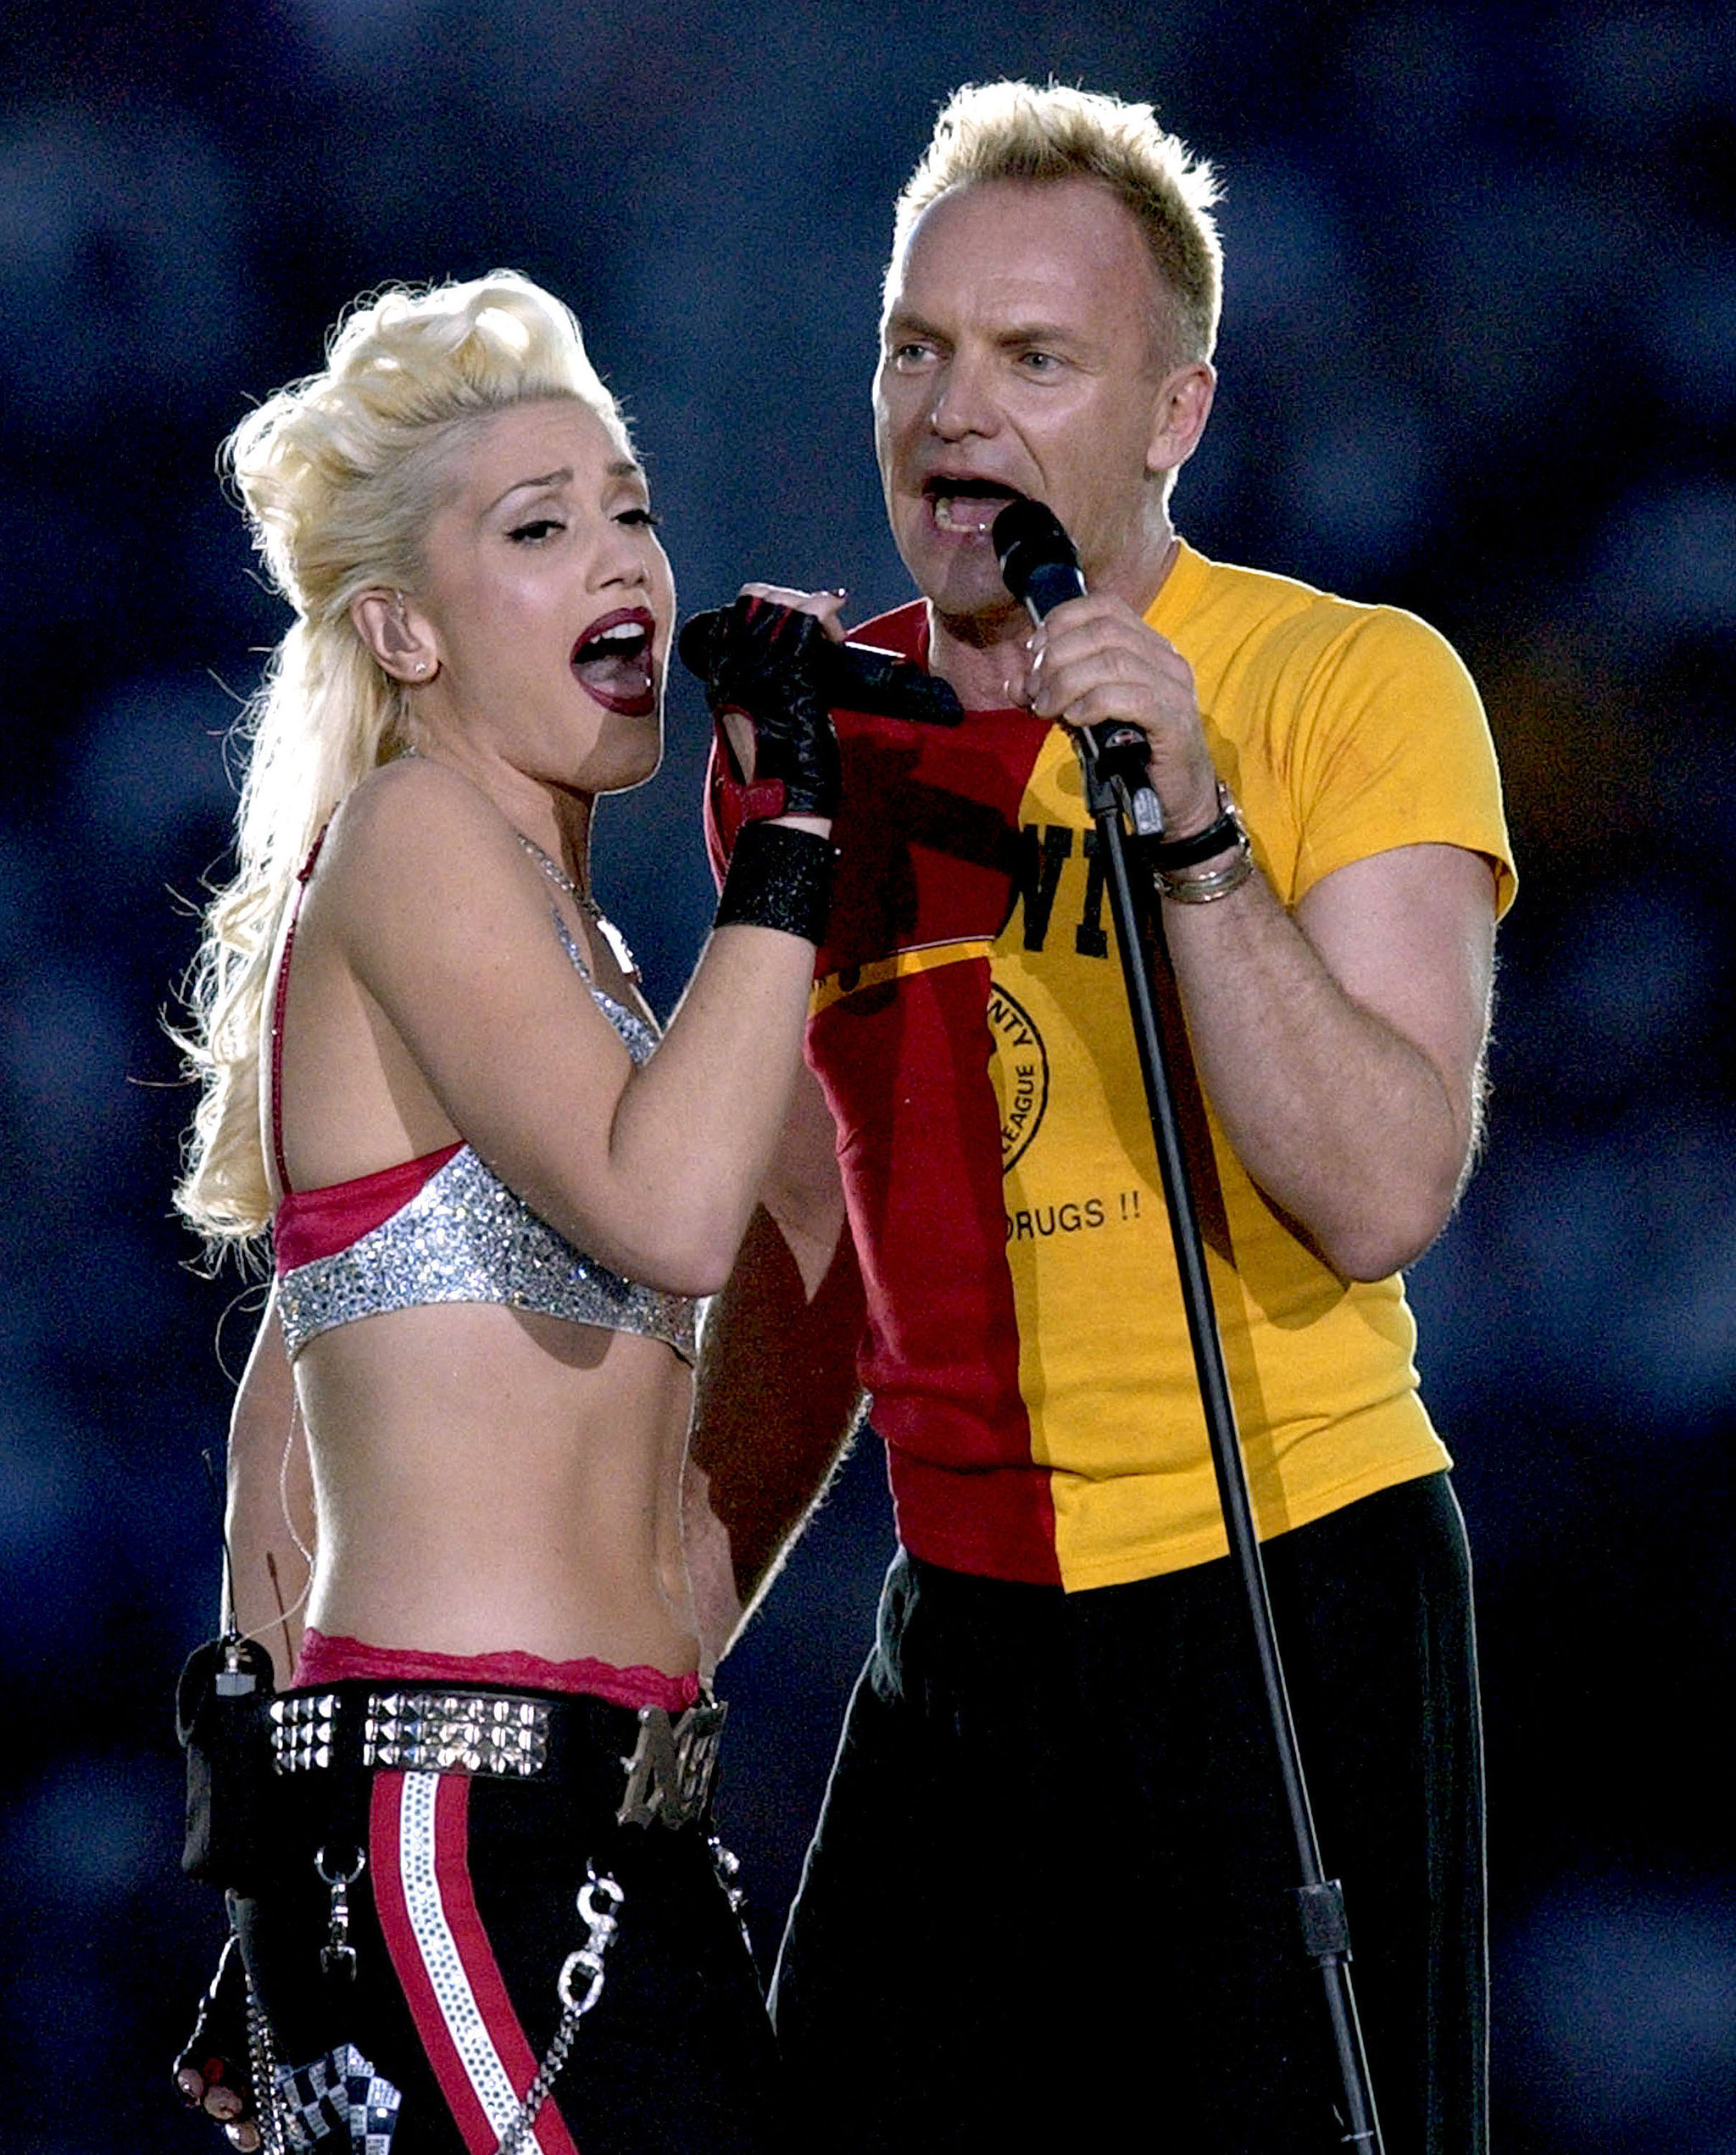 """Gwen Stefani joined Sting to sing """"Message in a Bottle"""" in 2003."""